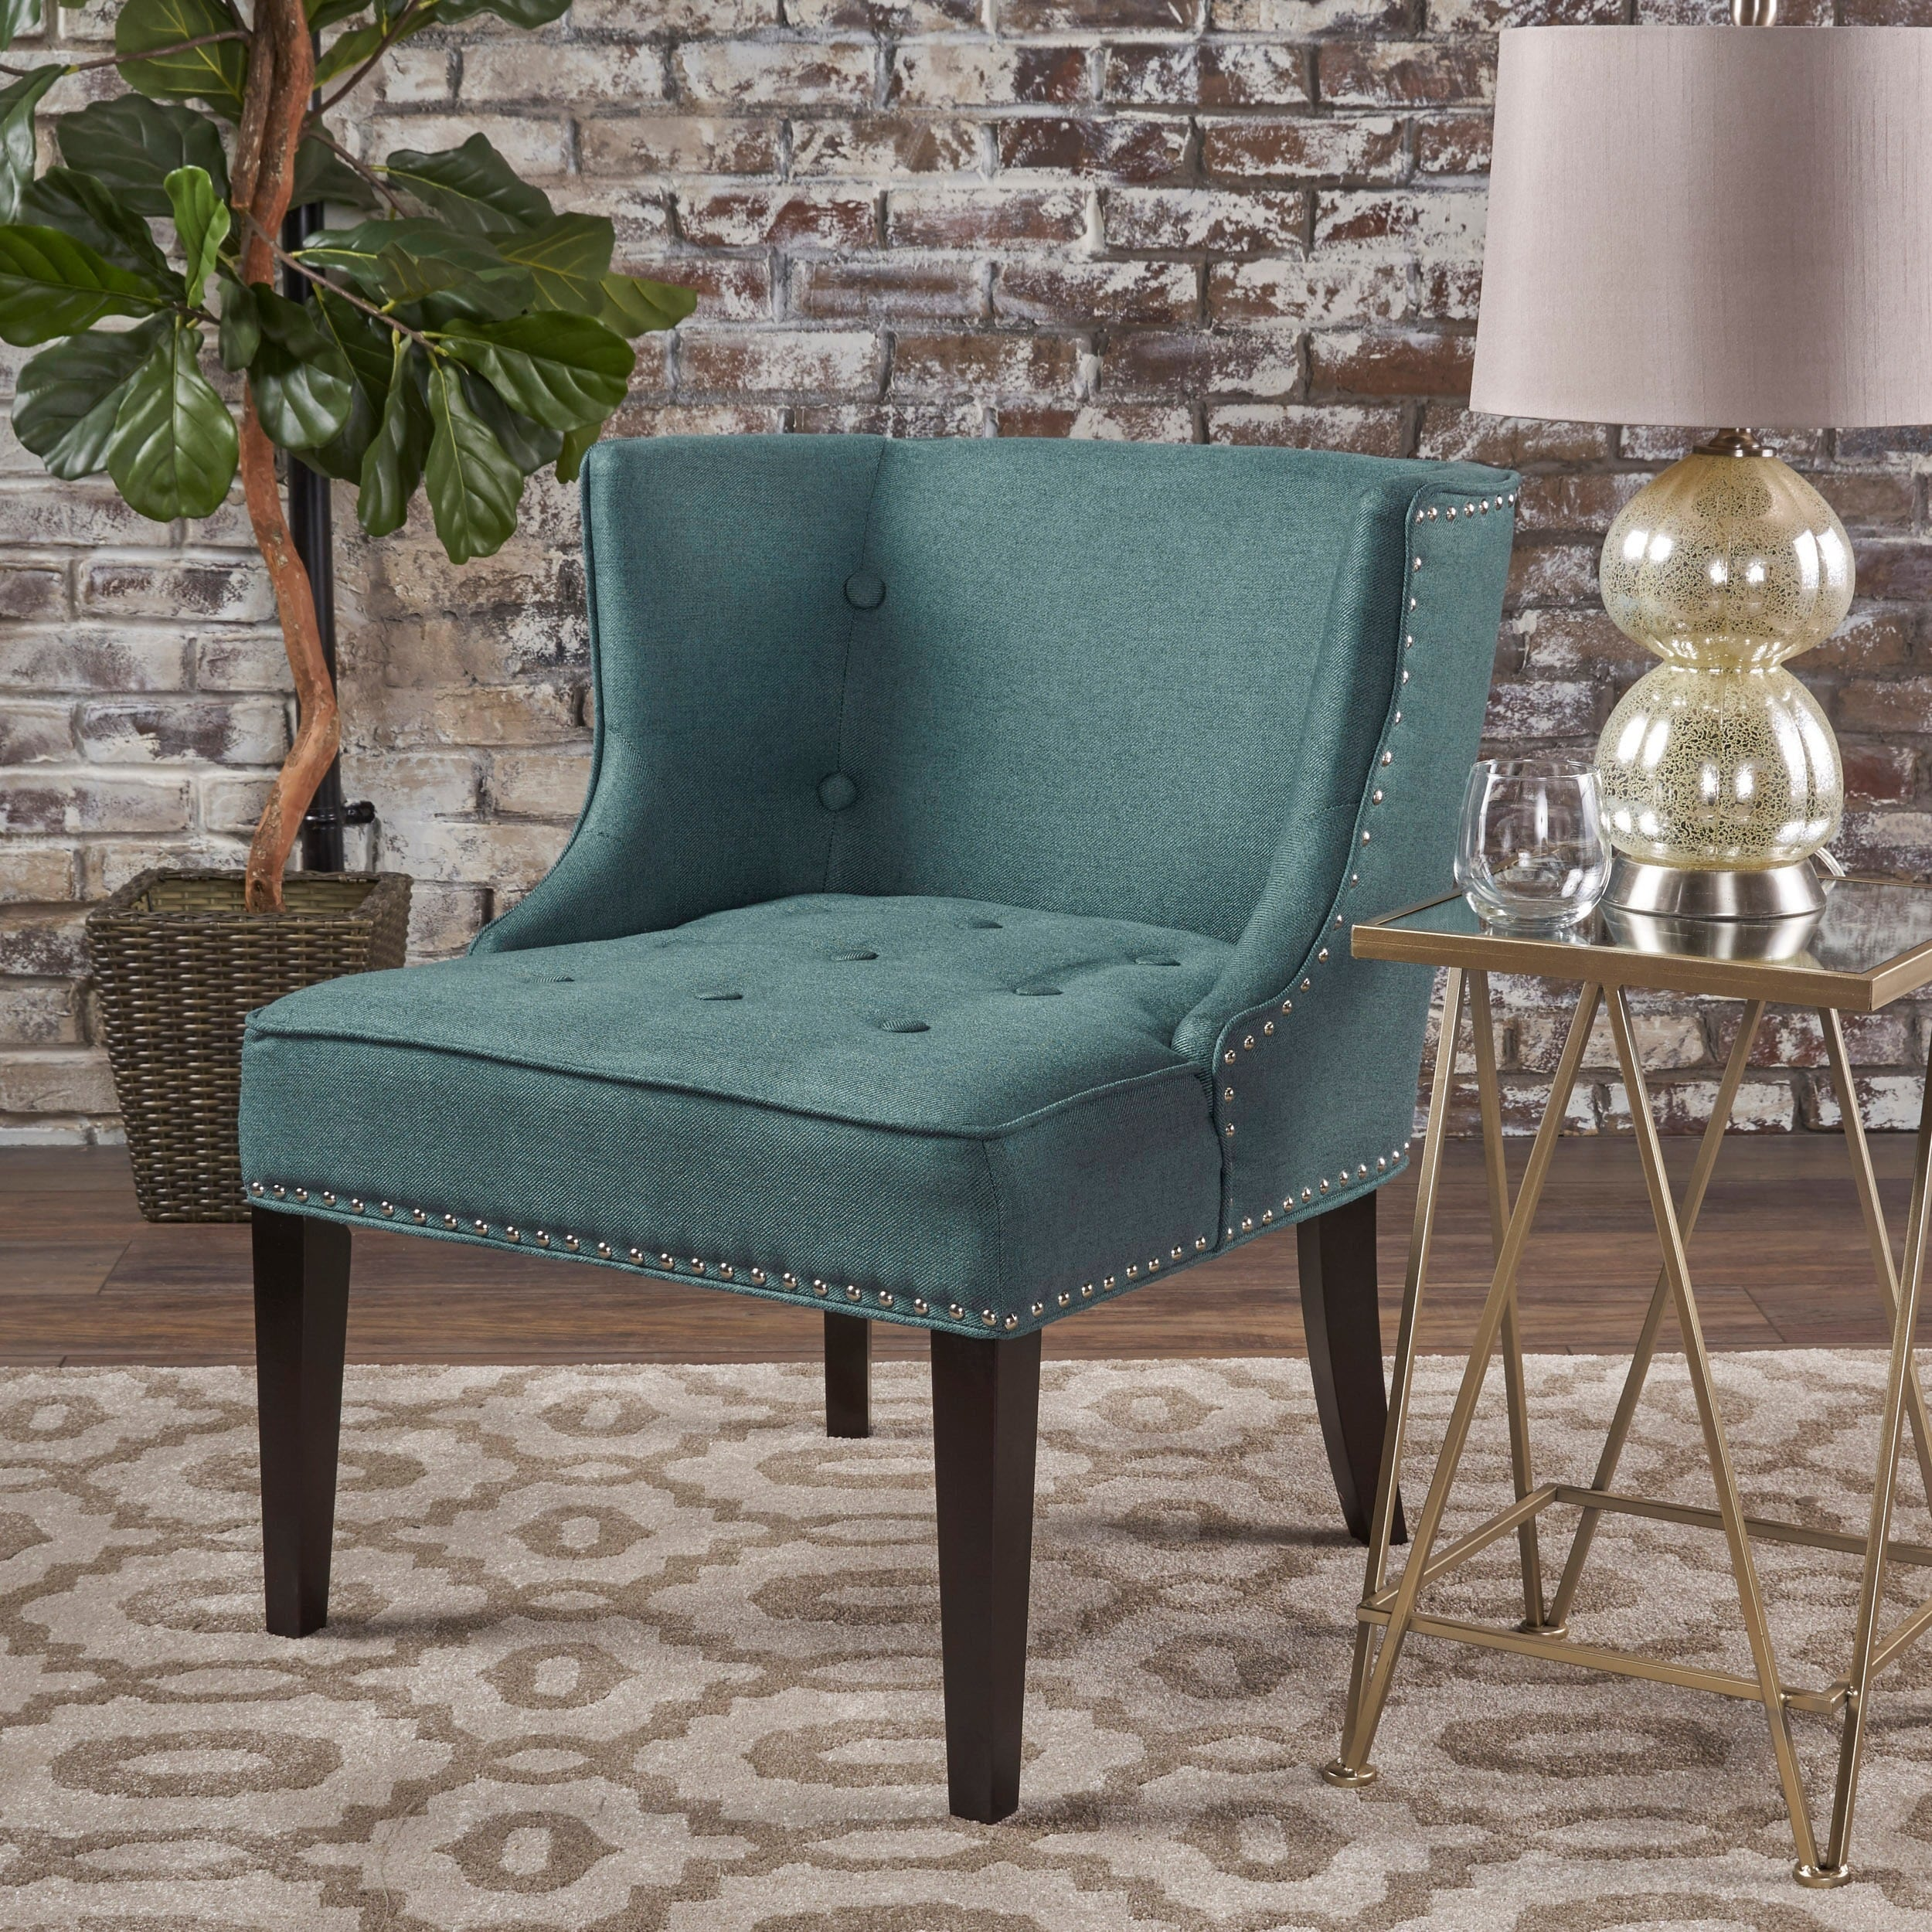 Used Wingback Chairs Buy Wingback Chairs Living Room Chairs Online At Overstock Our